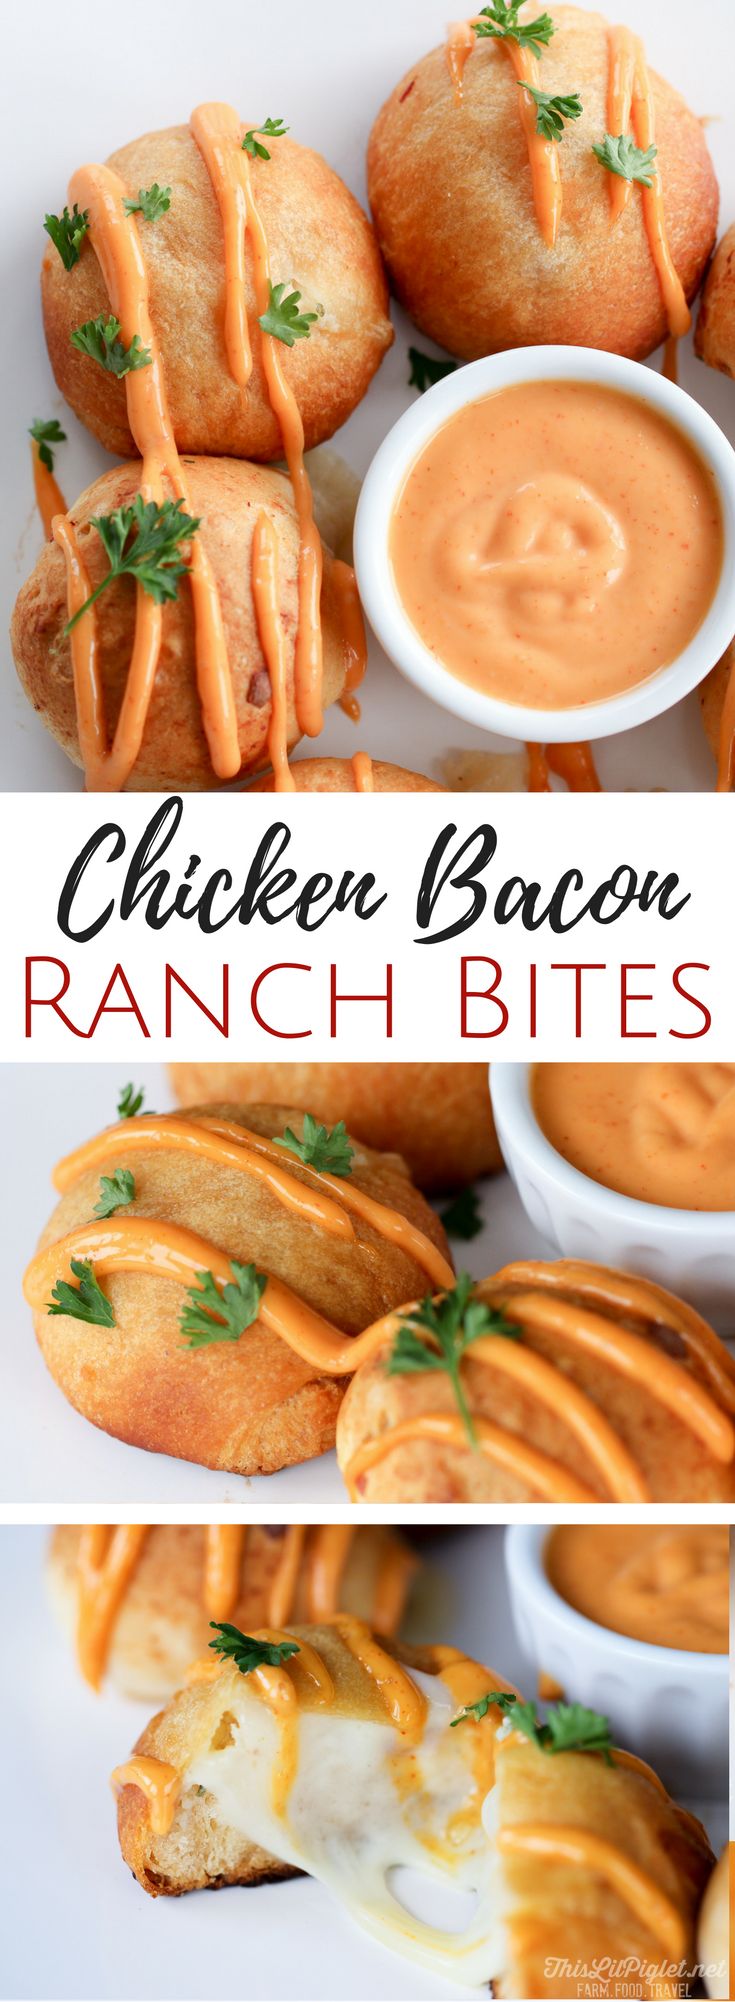 Chicken Appetizers: Chicken Bacon Ranch Bites // via @thislilpiglet